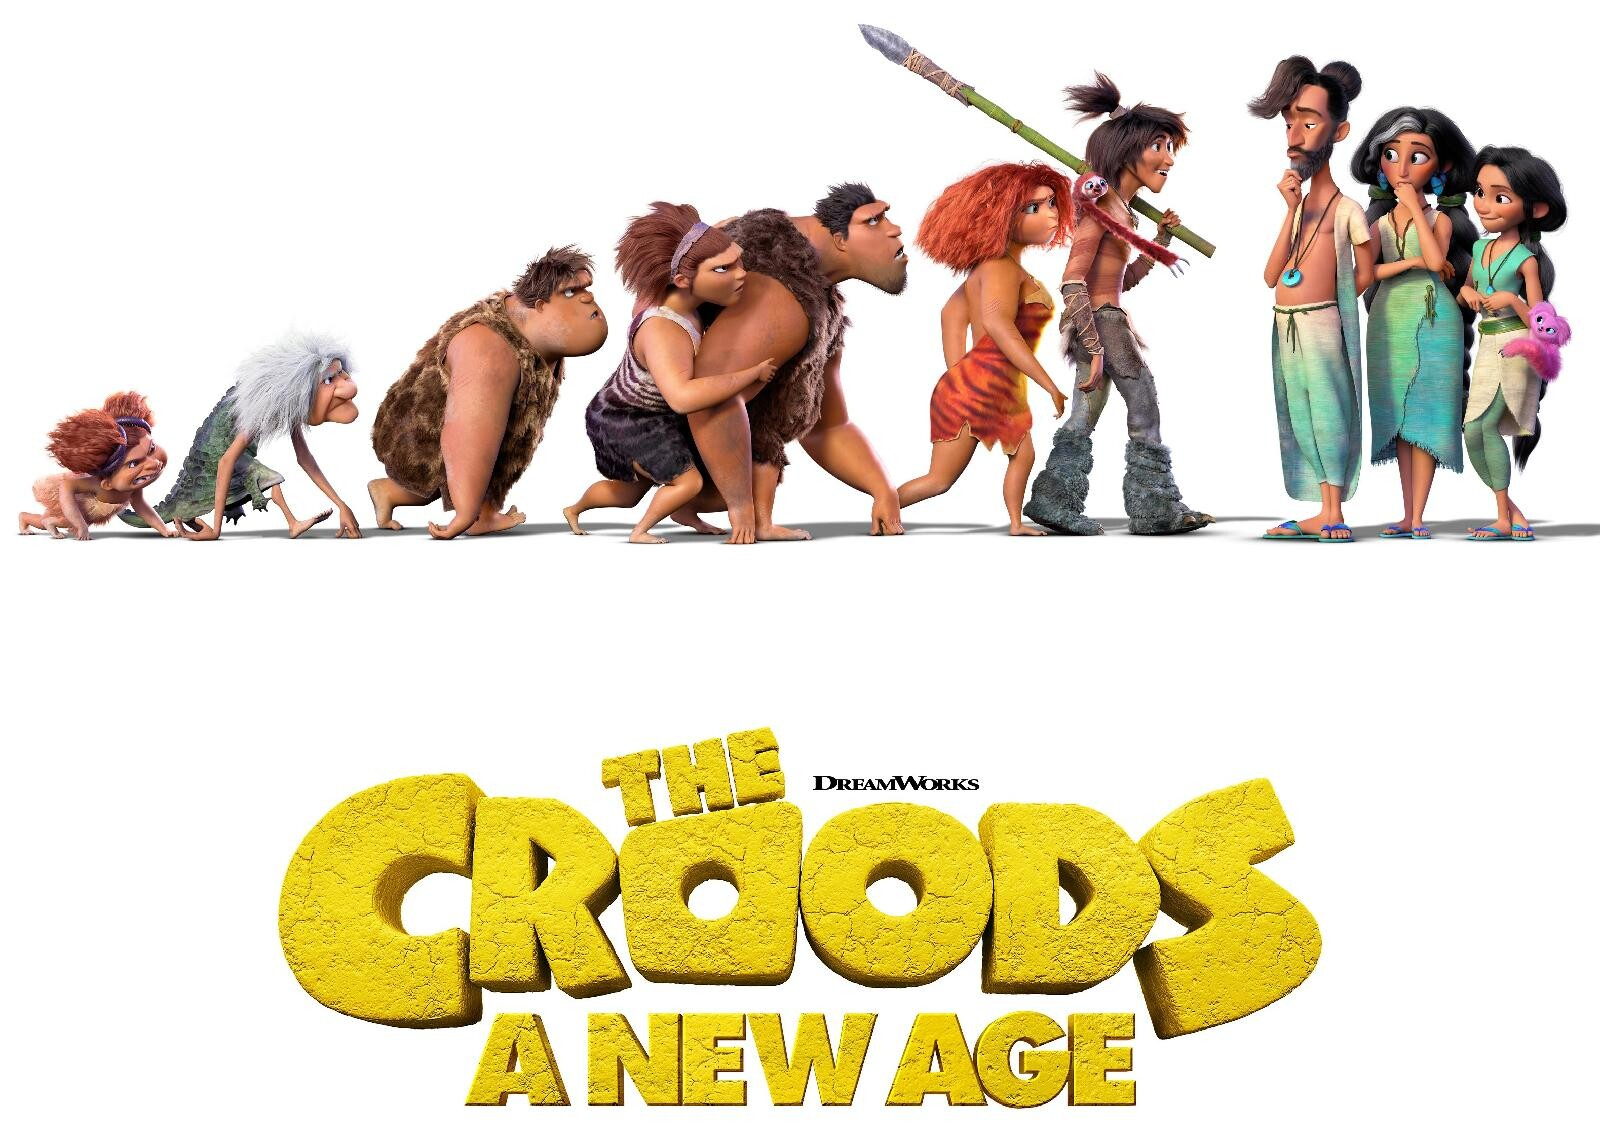 I worked on the Dawn model. all other aspects were done by the amazing Croods new age team at Dreamworks Animation.